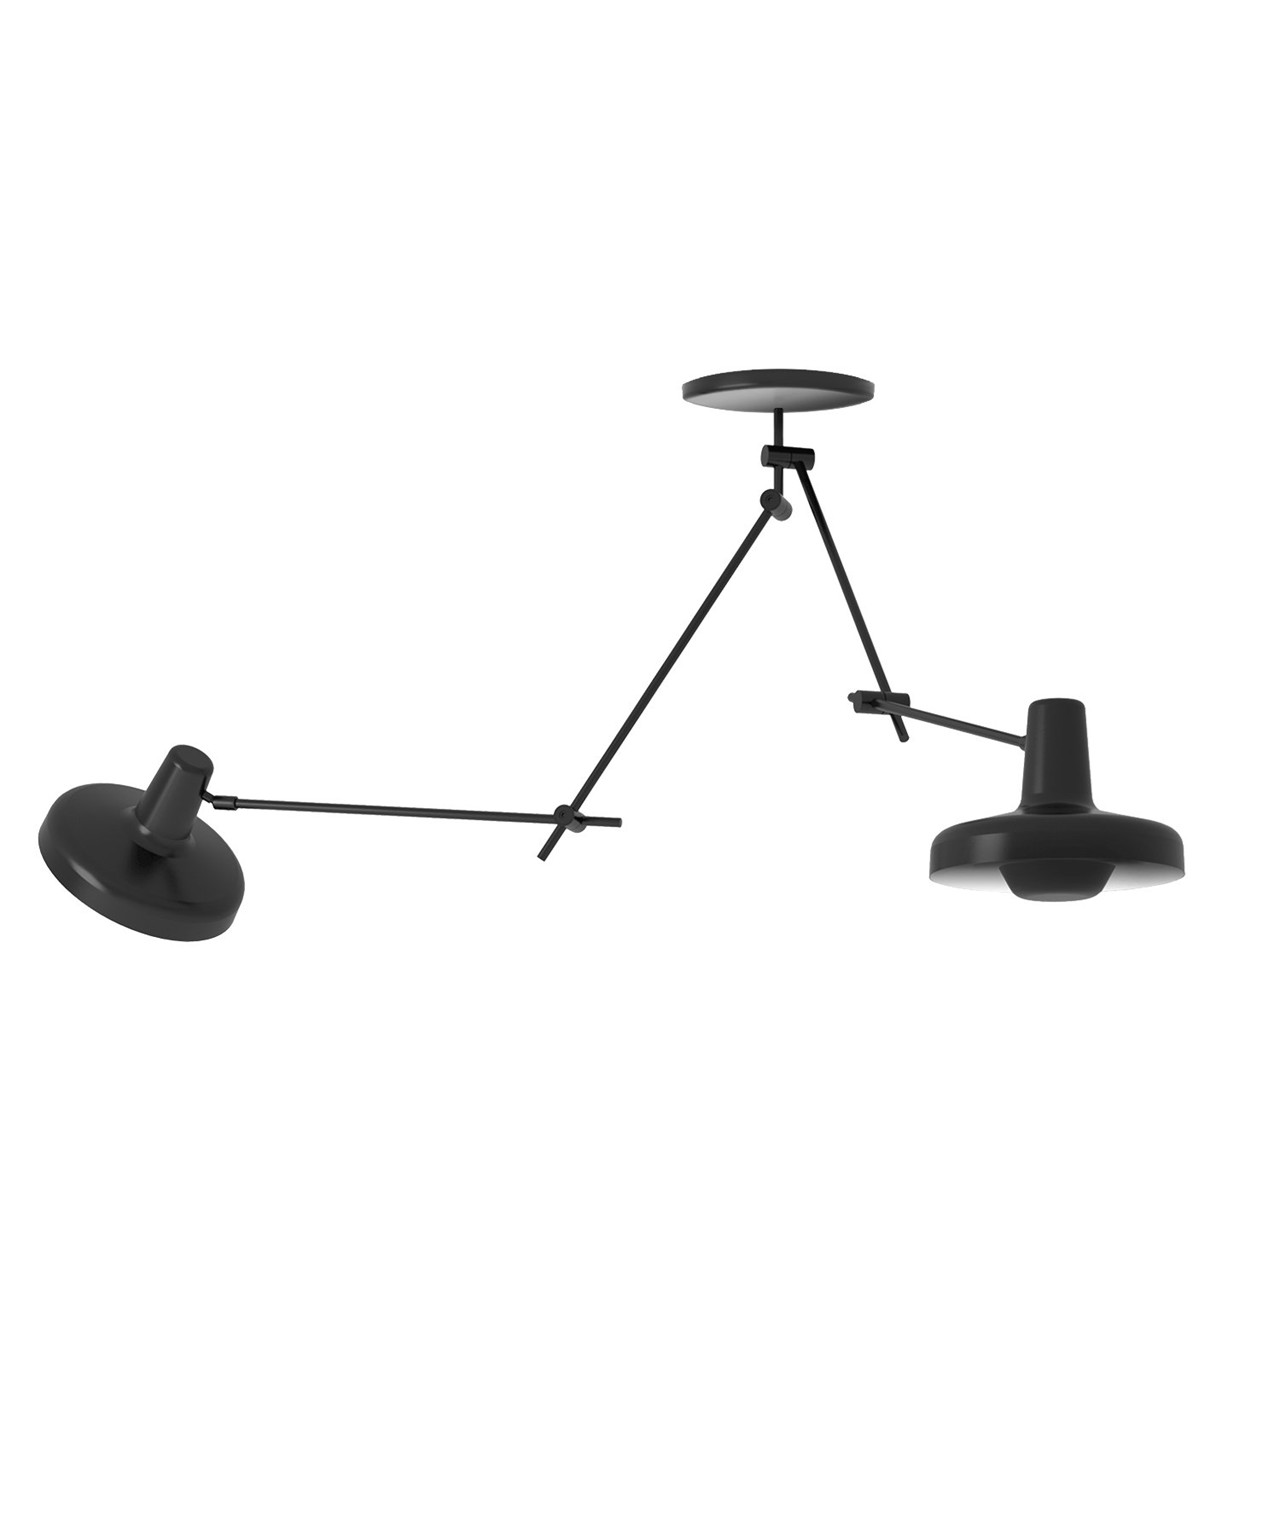 Image of   Arigato Loftlampe Dobbelt Sort - Grupa Products